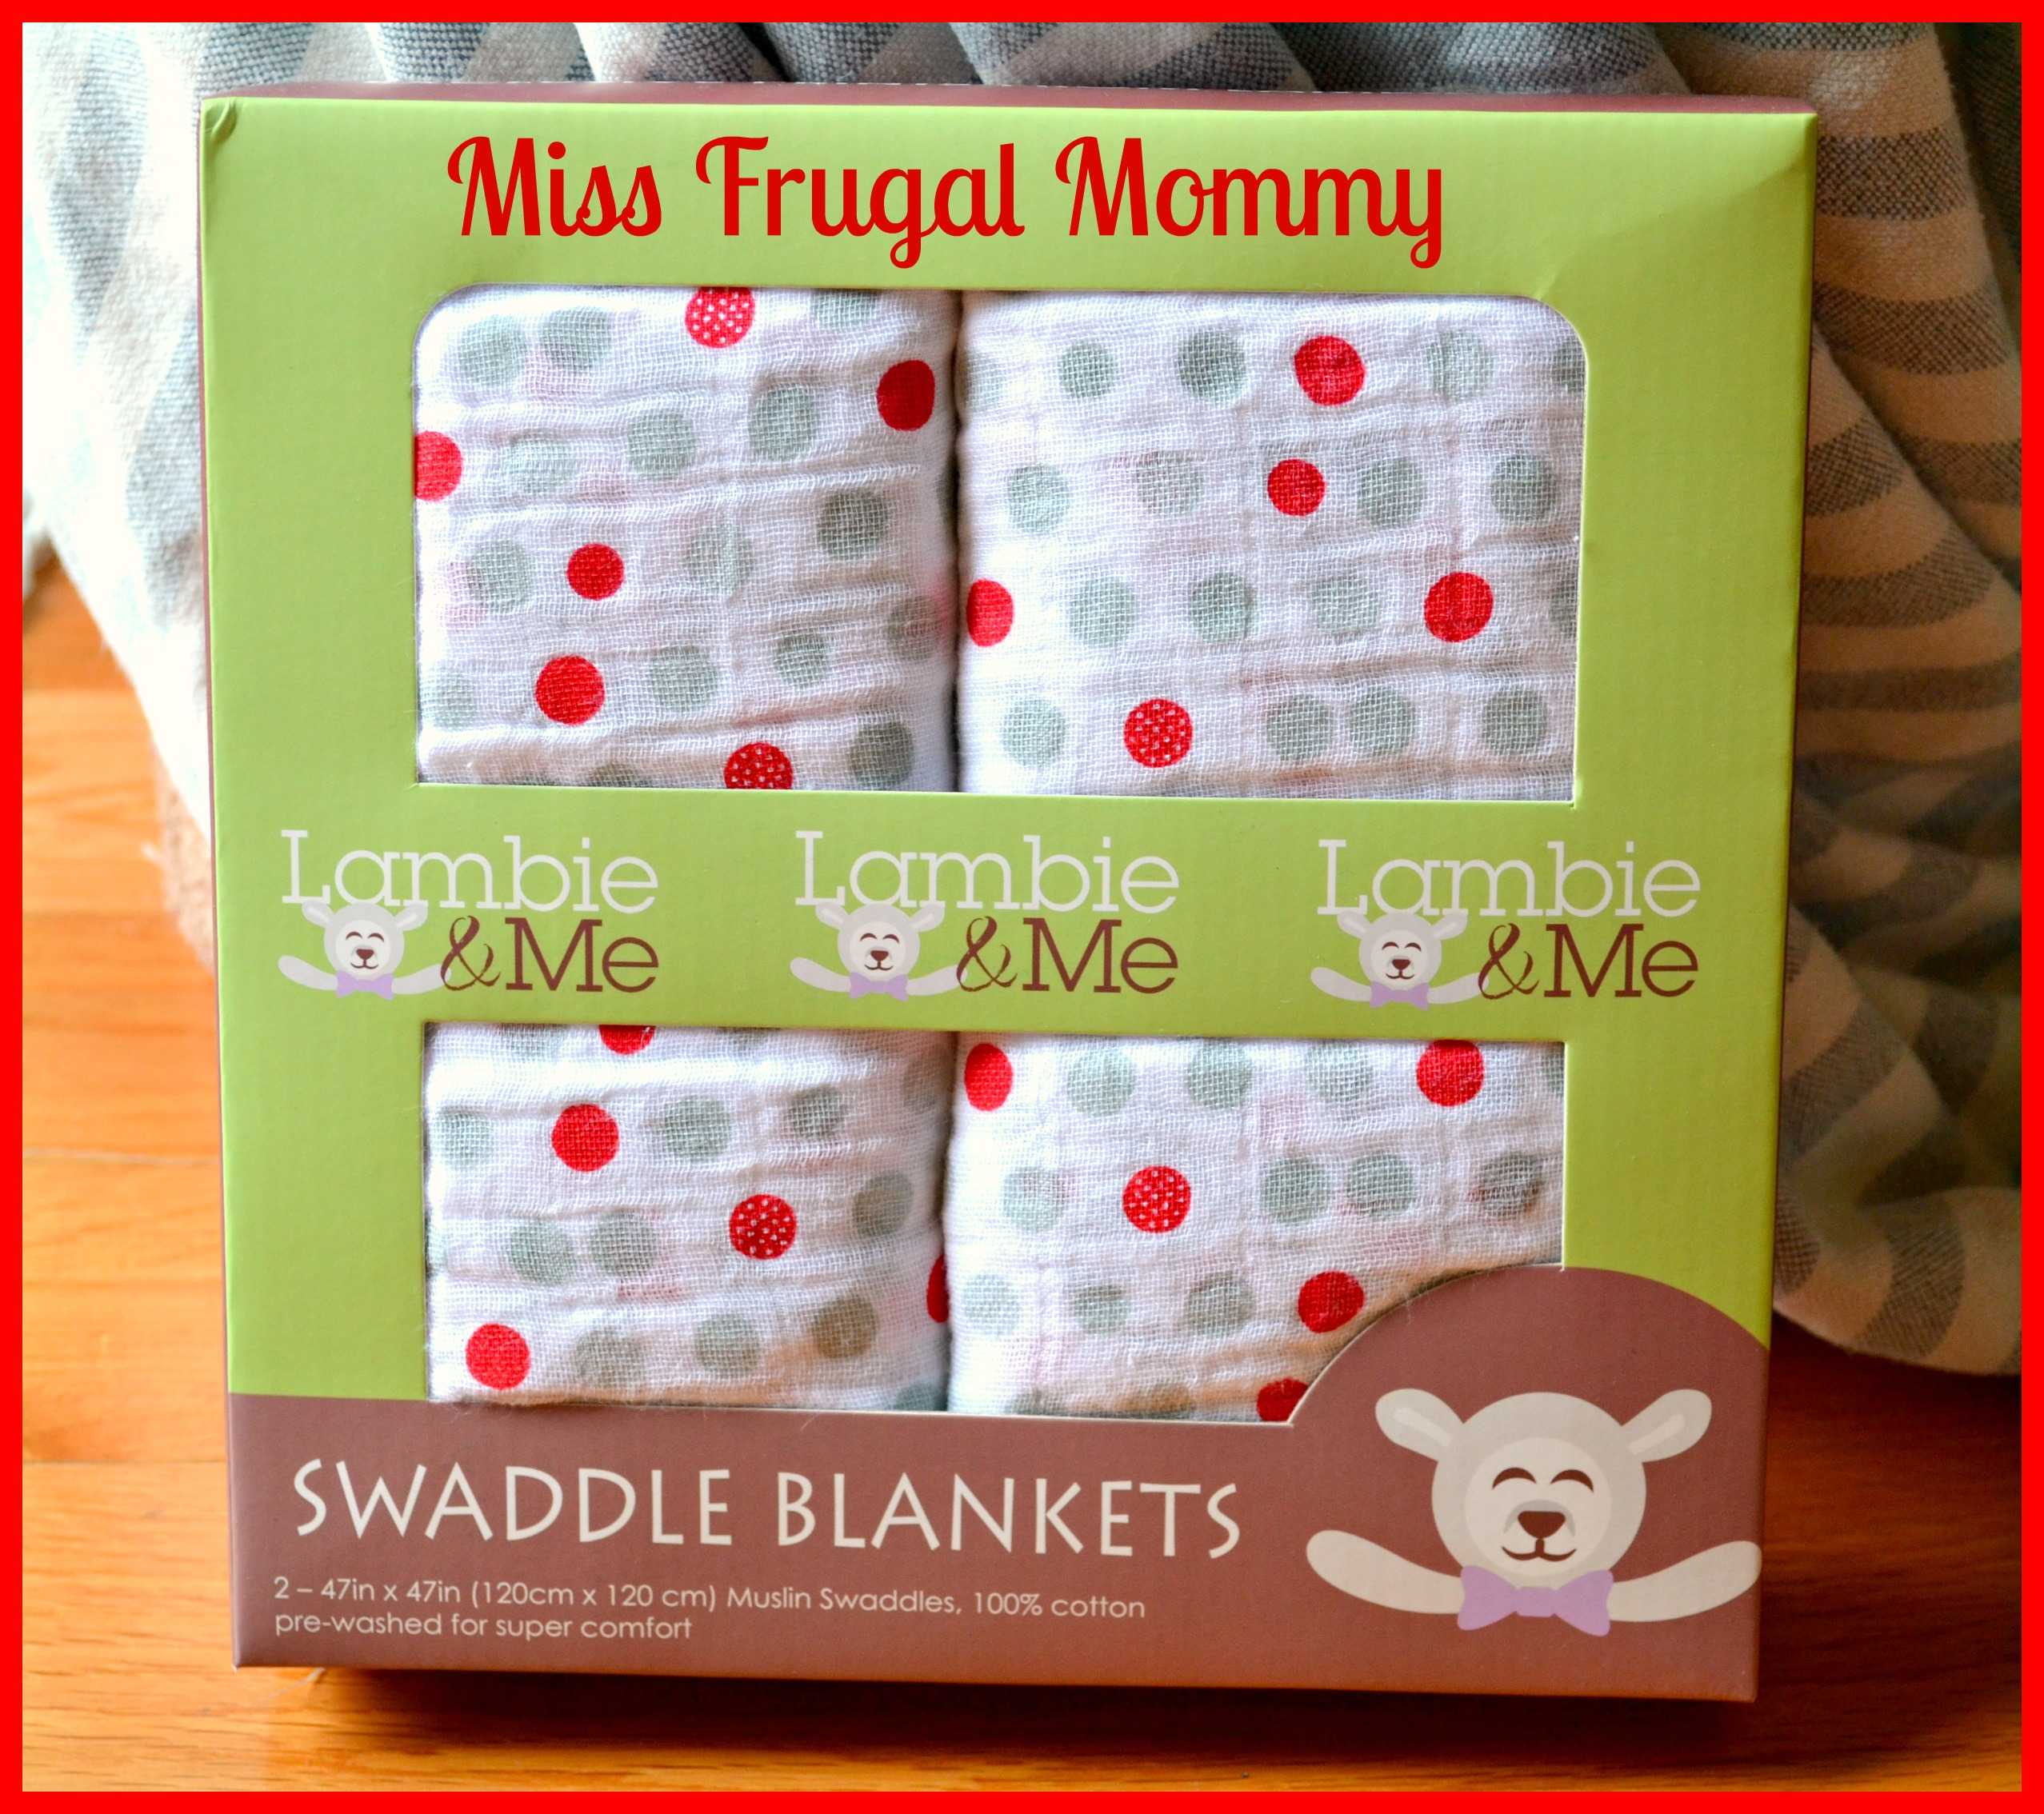 Lambie & Me Swaddle Blankets Review (Getting Ready For Baby Gift Guide)